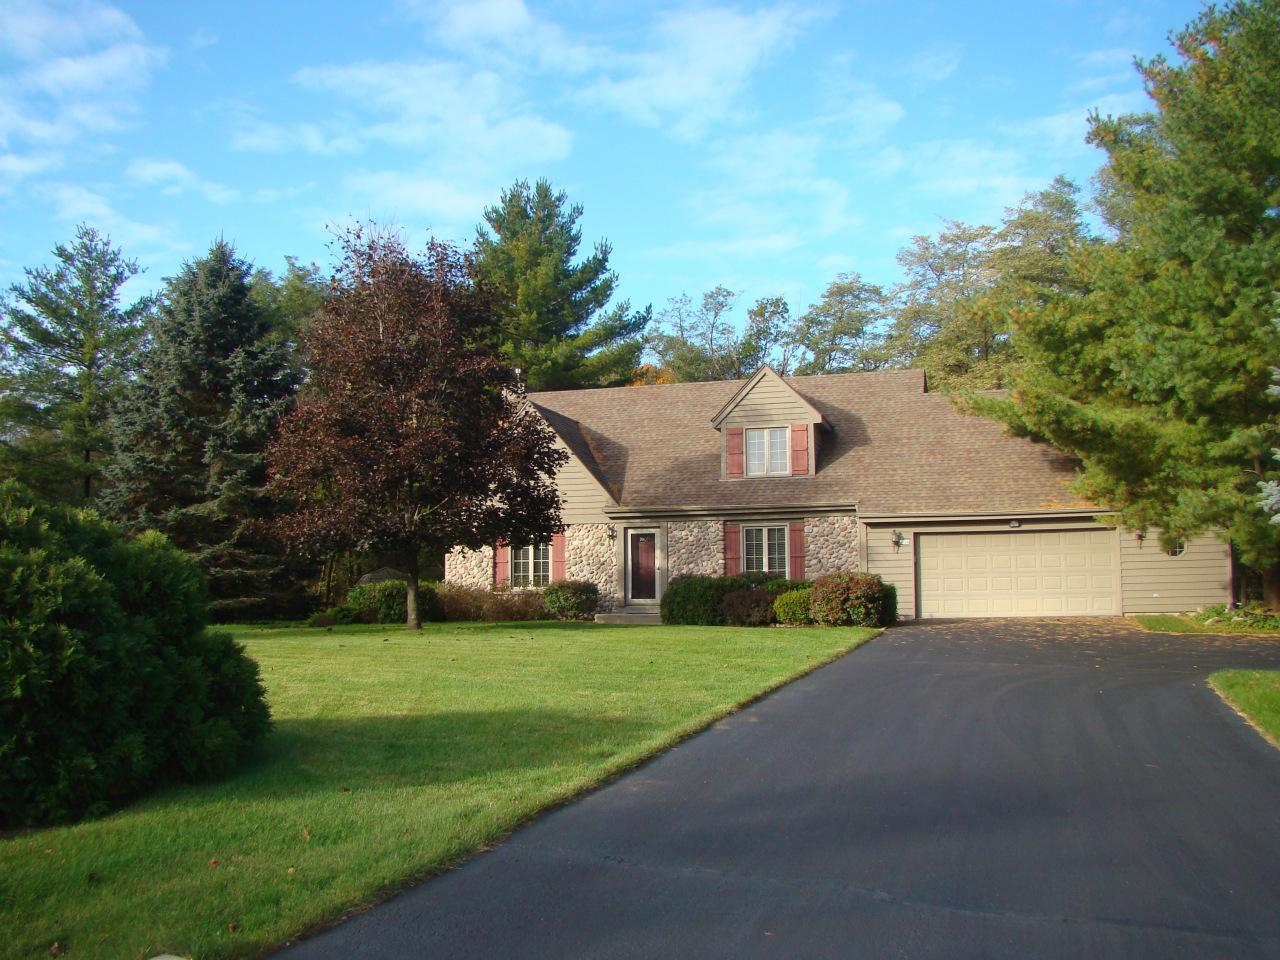 Beautiful nearly an acre setting on a cul de sac. Lovingly maintained, original Parade of Homes model showcases upgrades from that era. 5'x5' walk-in pantry, crown molding and first floor laundry. Kitchen offers quality raised panel cabinets, newer flooring; leads to expansive deck with pergola. The private back yard features a water fountain creating the perfect entertaining or relaxation spot. Inside, the room sizes will surprise you - Master suite has a bump out for seating with access to private balcony, huge walk-in closet and heated bonus room - possible for exercise, office or storage. Attic storage as well, with walk up access from garage! Newer roof and some windows have been replaced. Low town taxes w/ the convenience of West Bend and Hwy 45 only 3 miles away!